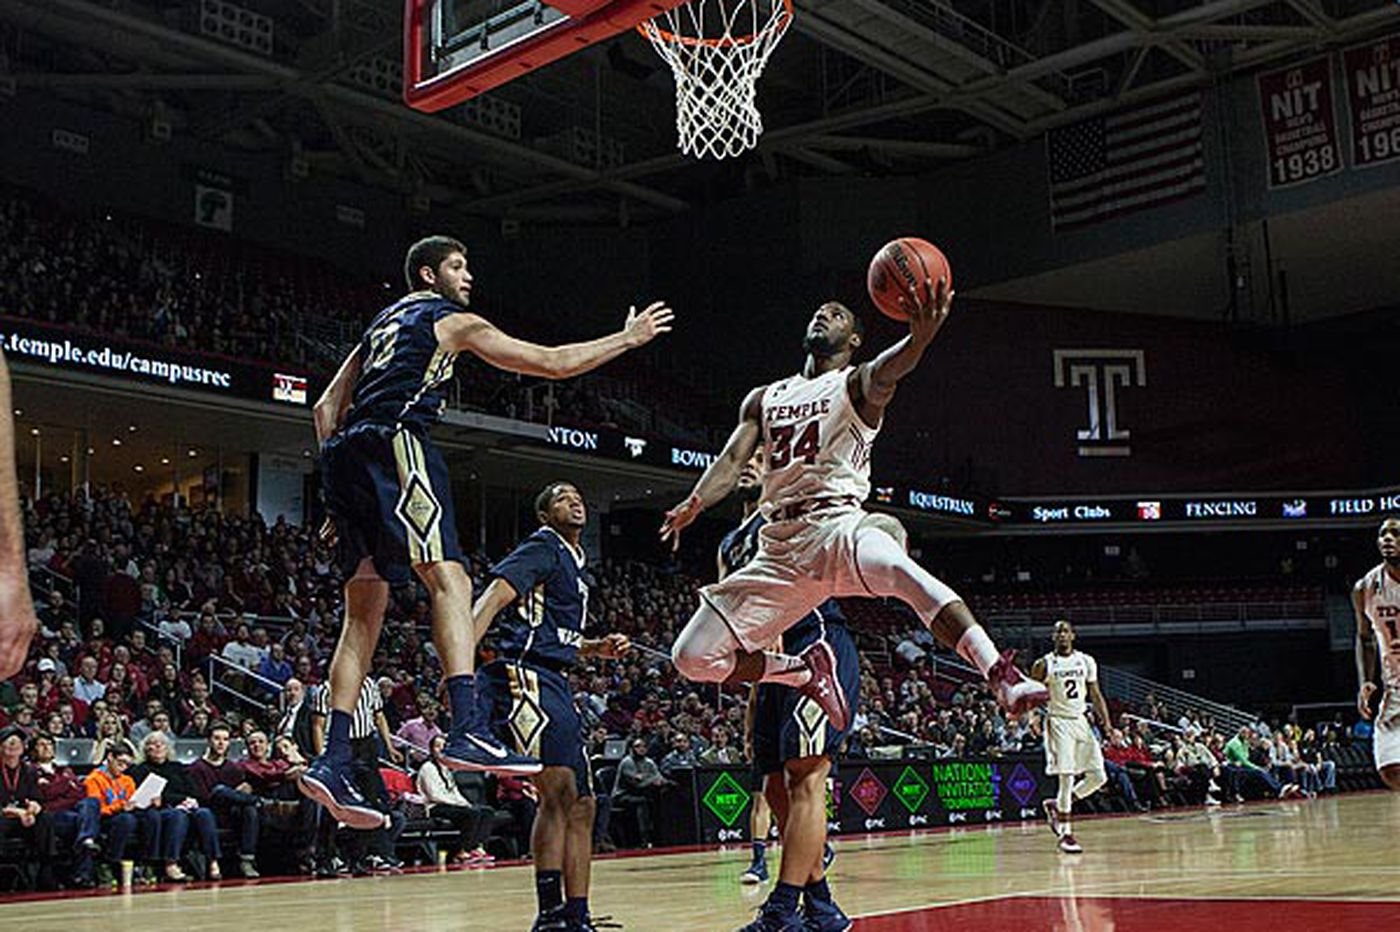 Temple chops down GW, reaches NIT quarterfinals